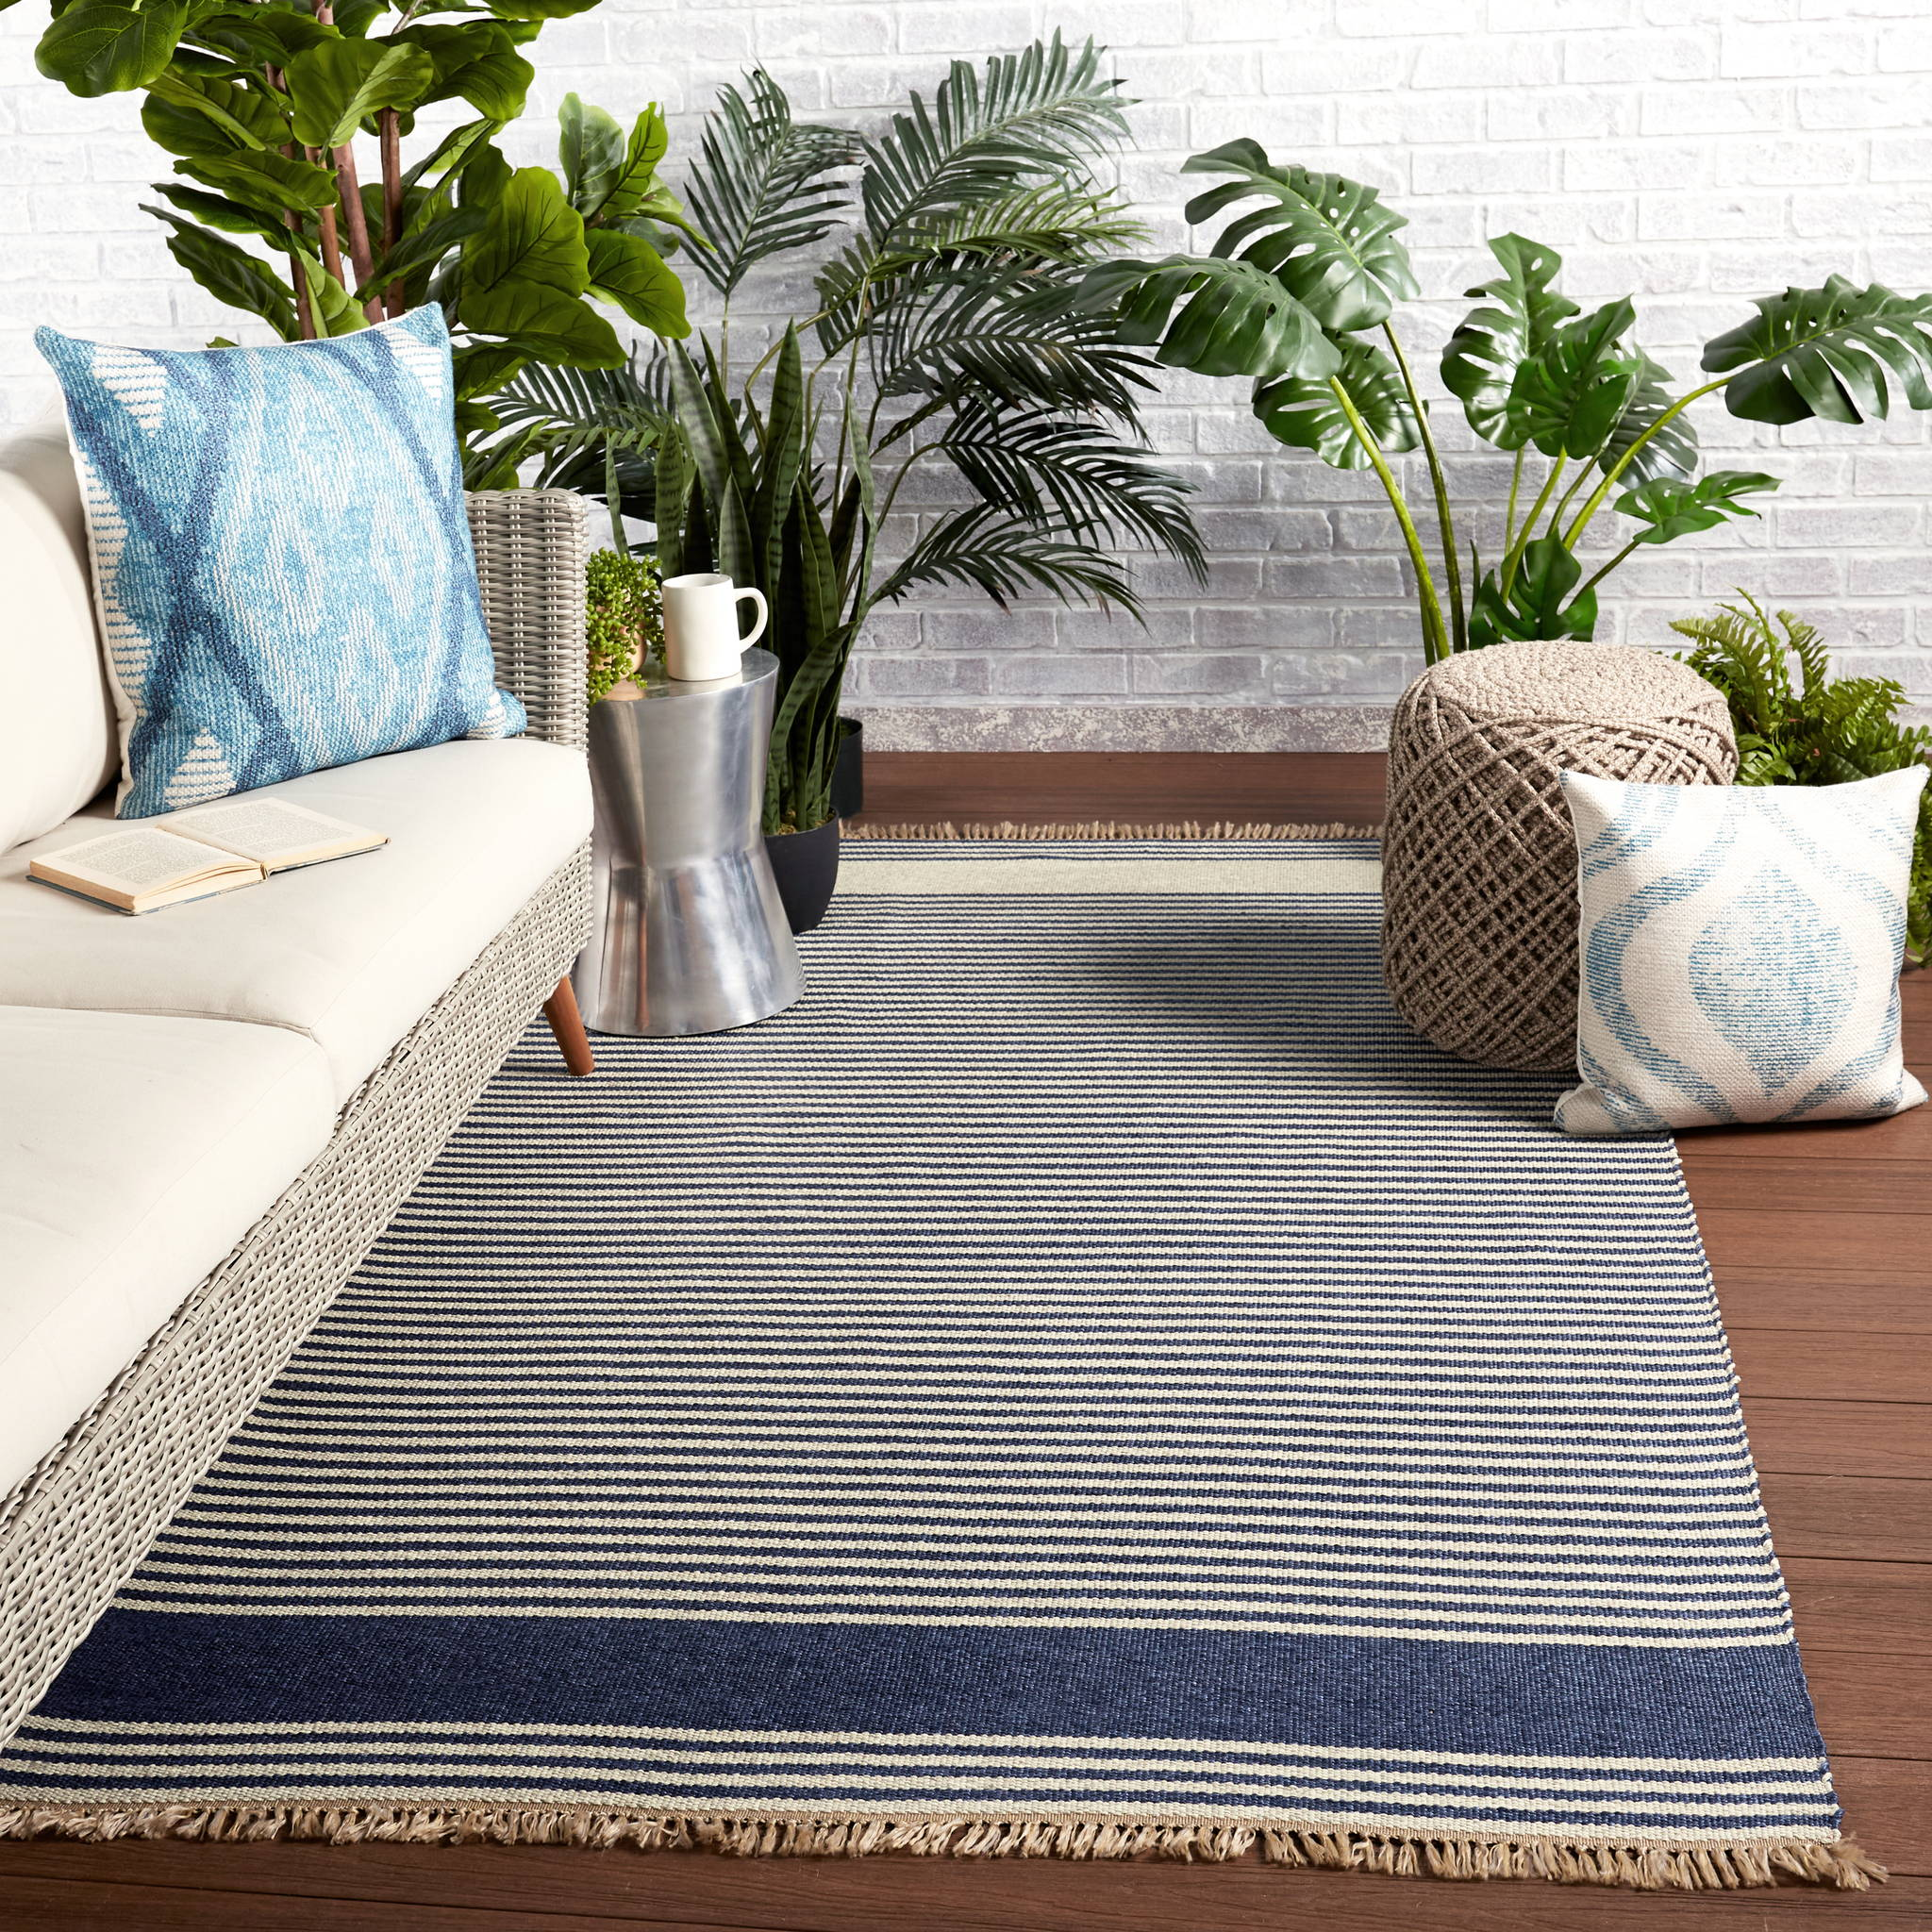 Save on fabulous indoor-outdoor rugs - perfect for any season at the beach